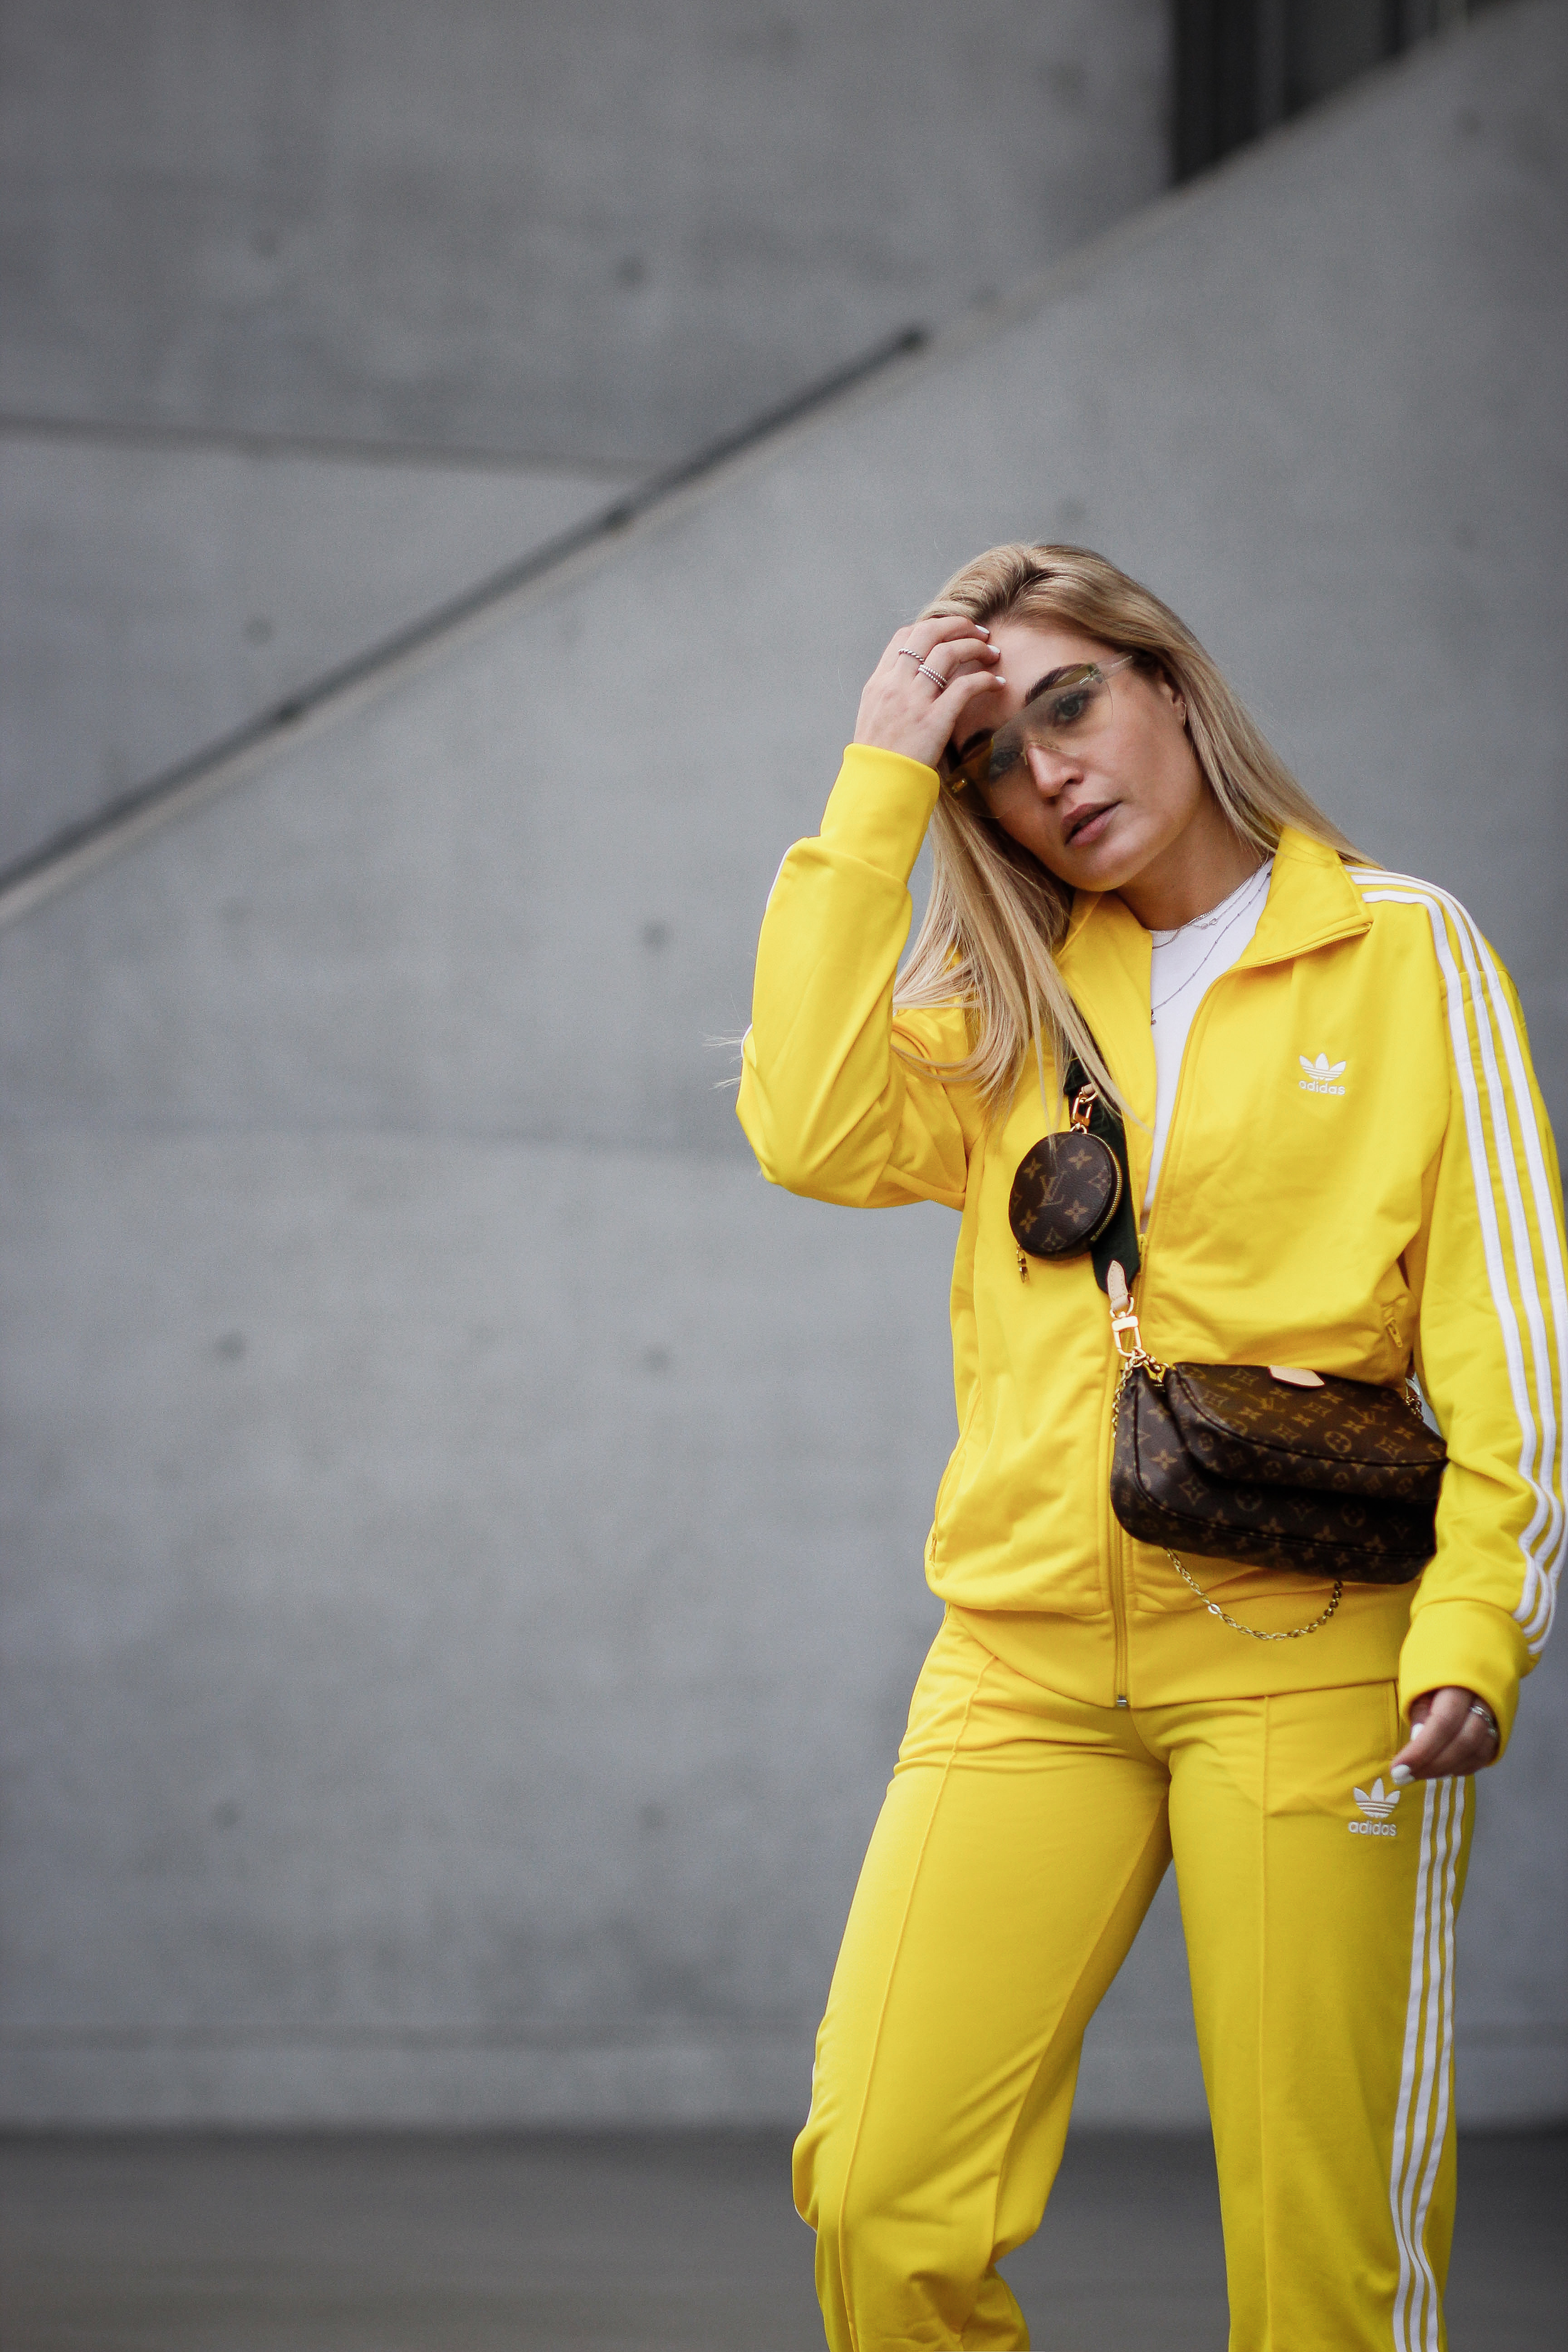 Lauralamode Adidas Outfit Tracksuit Streetstyle Look Outfitoftheday Louis Vuitton Louis Vuitton Multipochette Balenciaga Triple S Munich Berlin Blogger Fashionblogger13